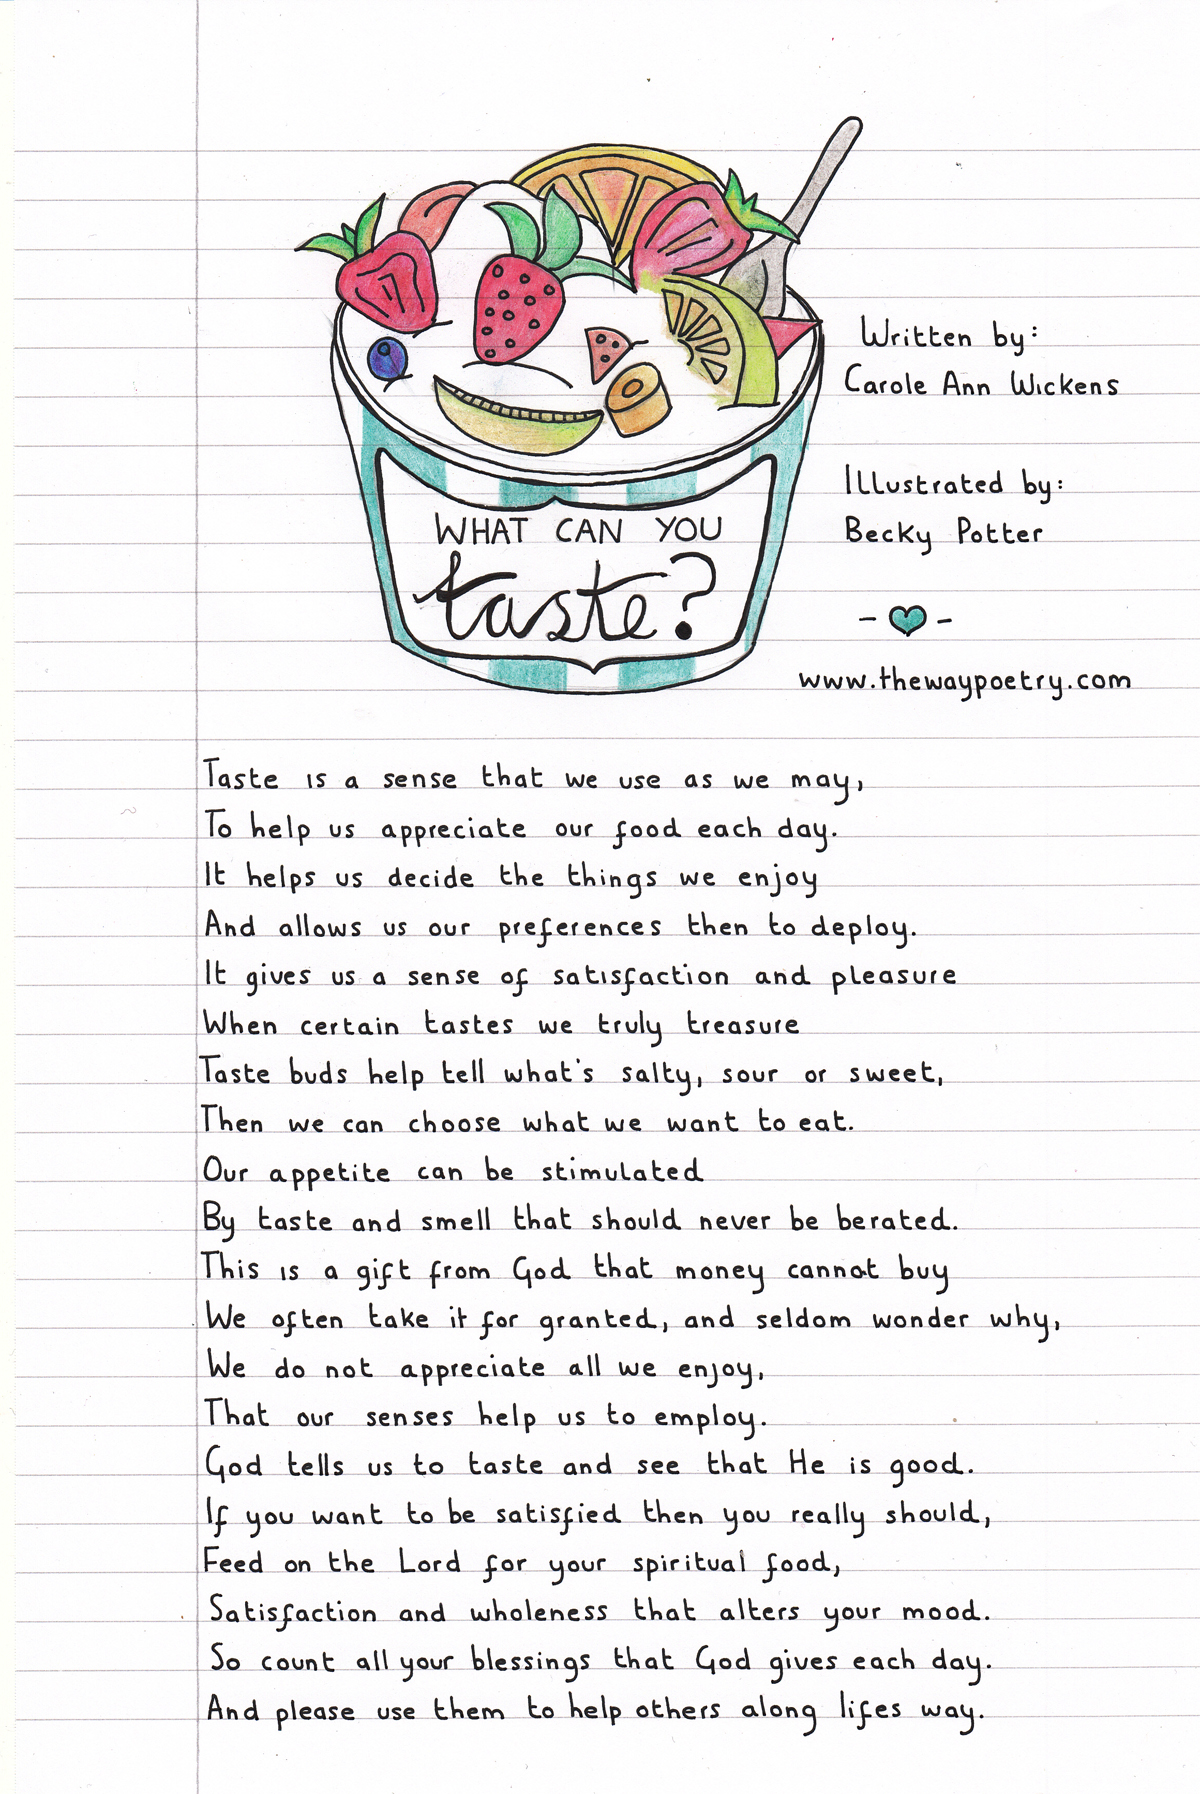 What Can You Taste? by Carole Ann Wickens